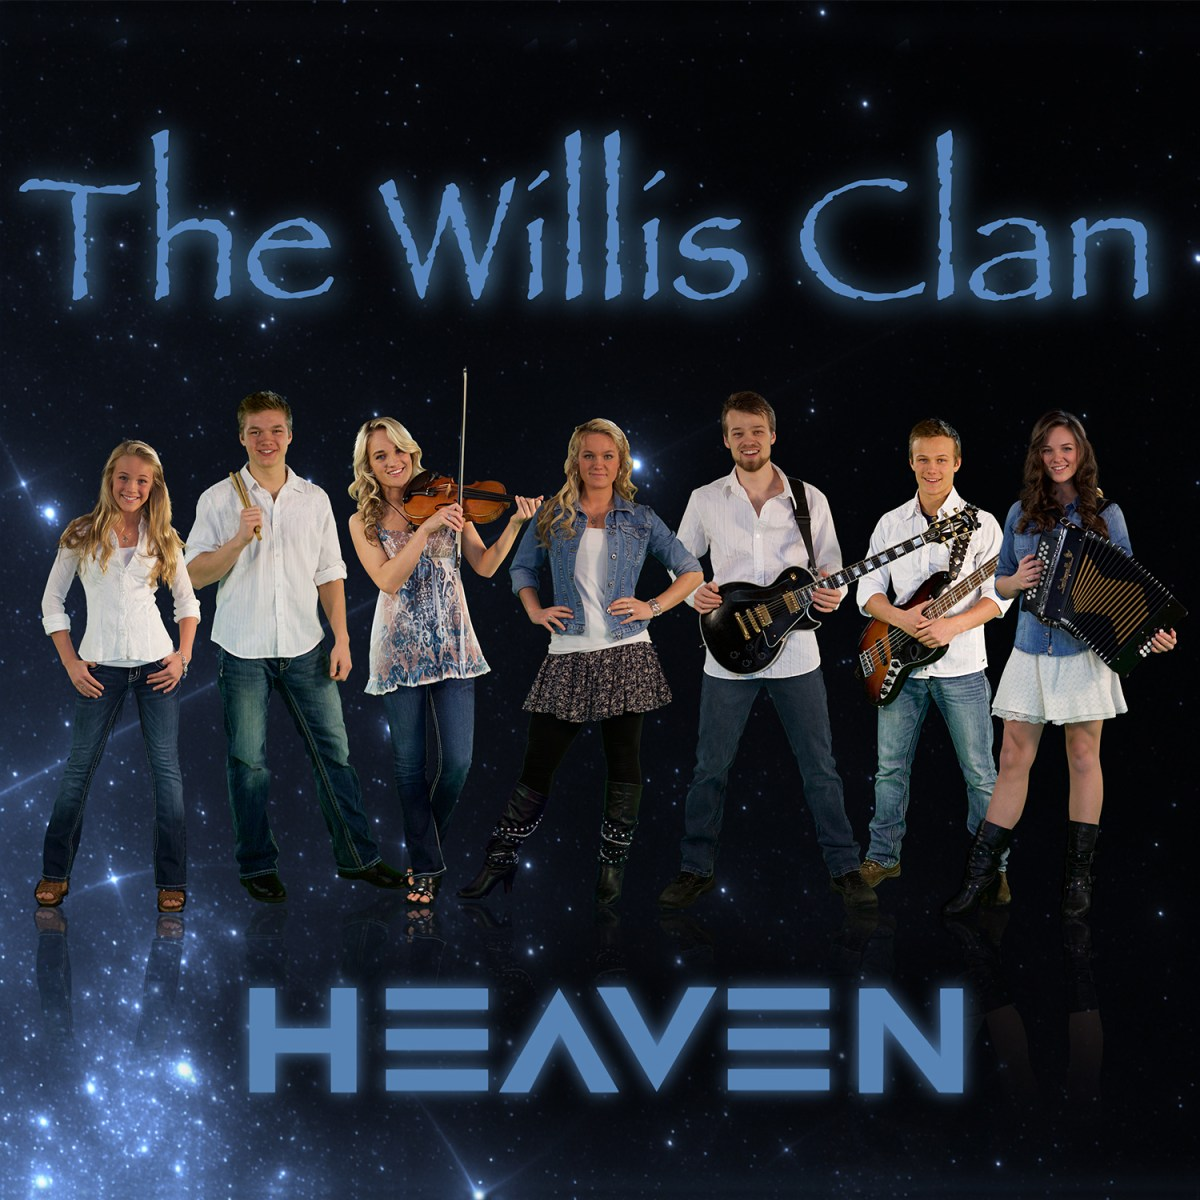 Heaven by The Willis Clan: Music Review